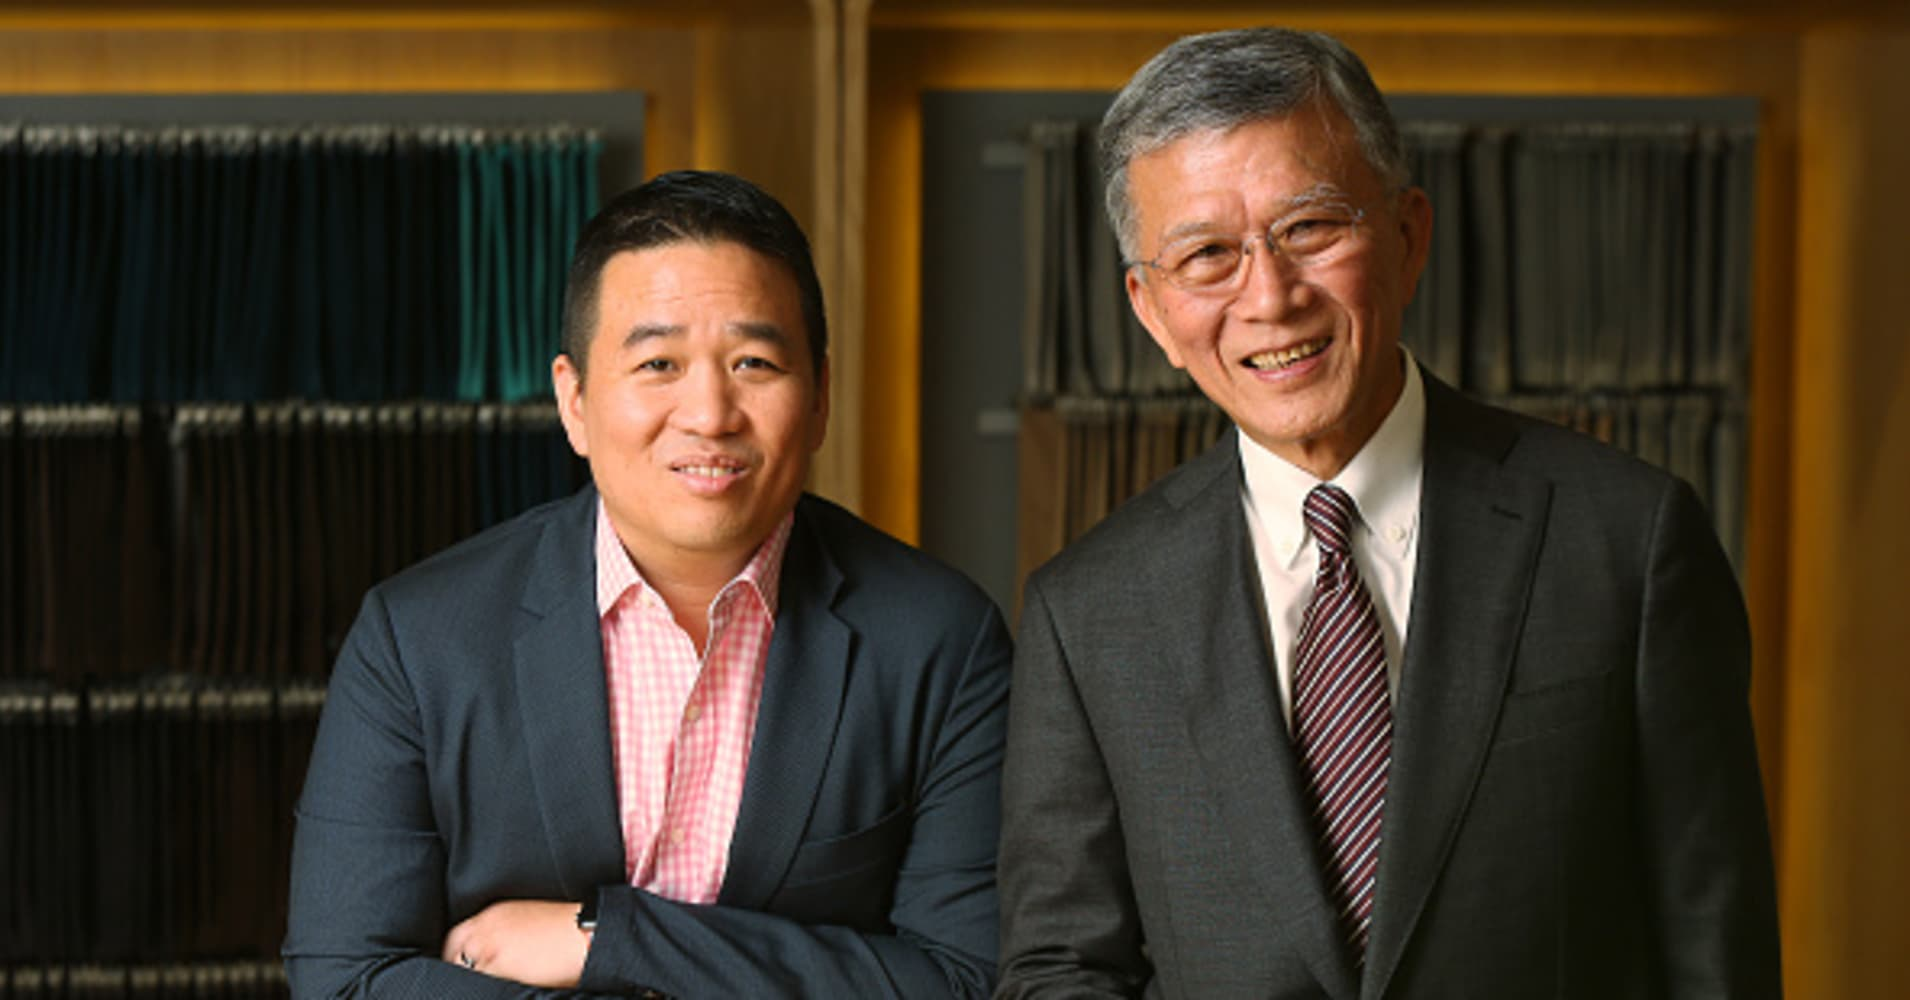 Roger Lee Kwo-chuan (Left), Chief Executive Officer, and Dr. Harry Lee Nai-shee (Right), Chairman of TAL Group.